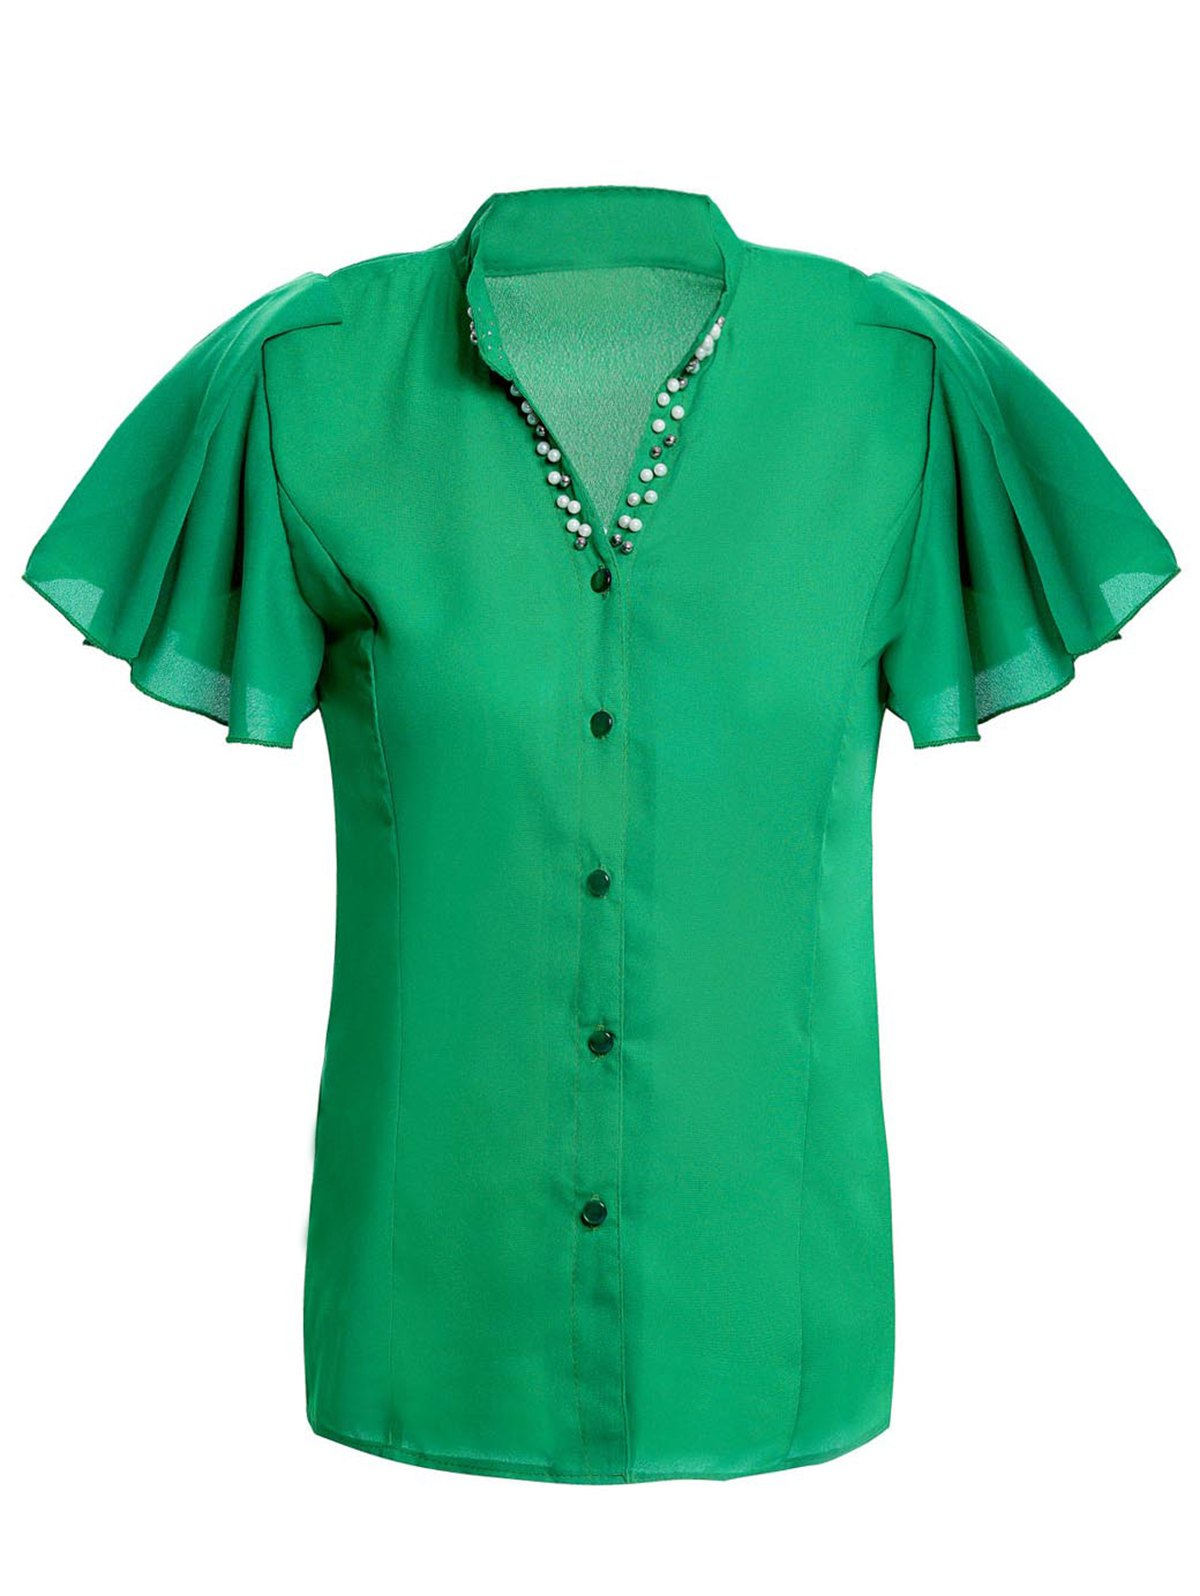 Elegant V-Neck Beaded Short Sleeve Ruffled Chiffon Blouse For Women - GREEN S